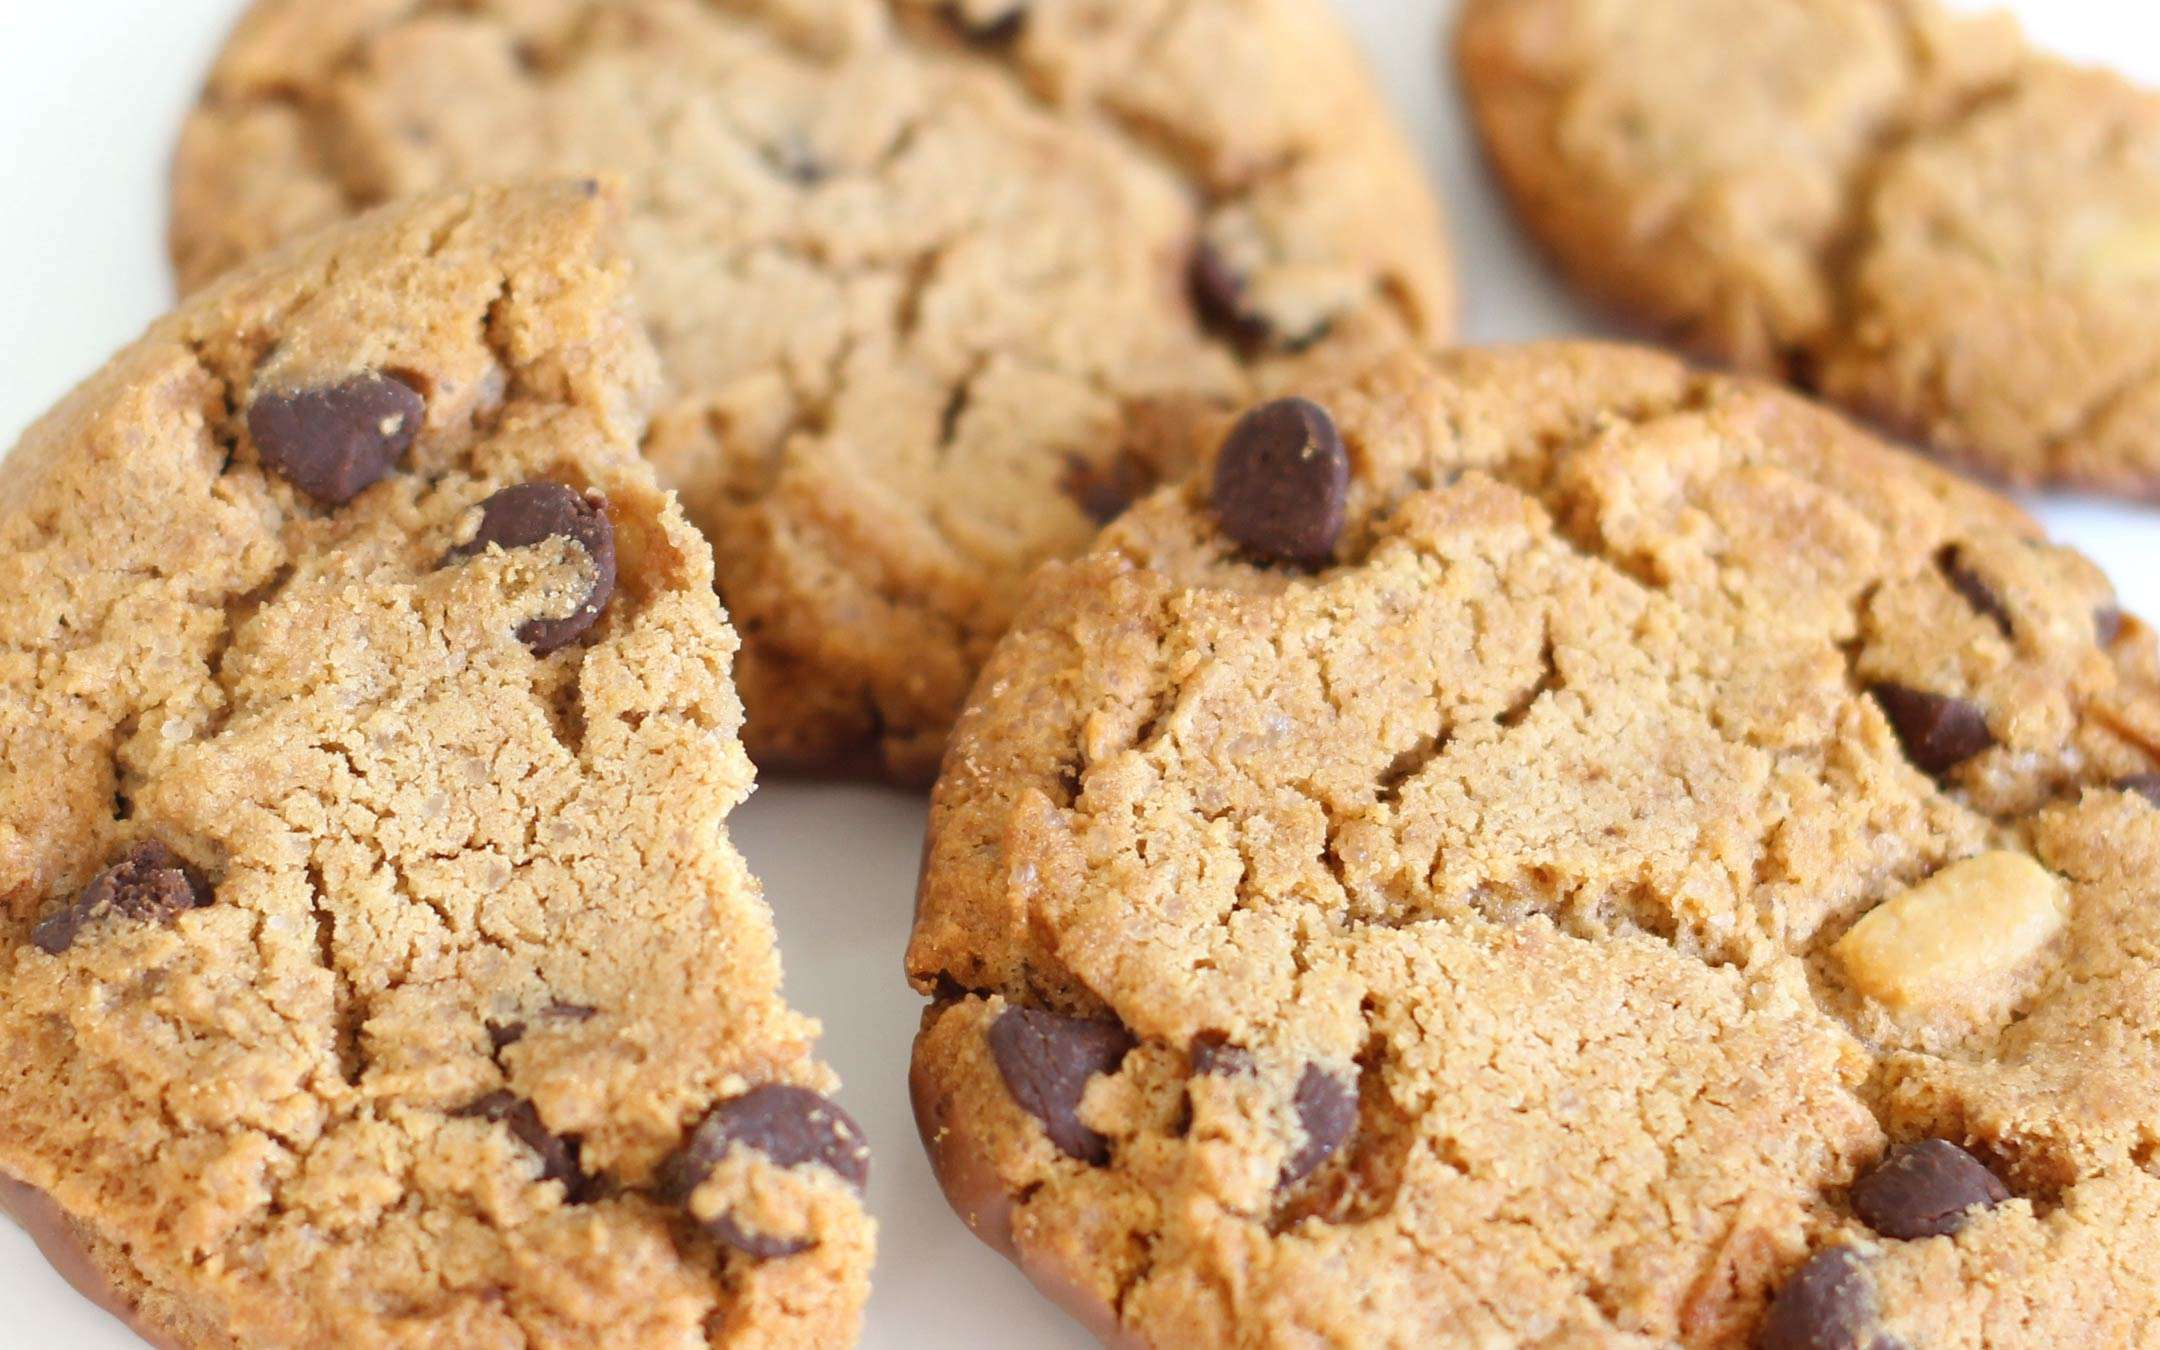 Third-party cookies: brands and adv are not ready